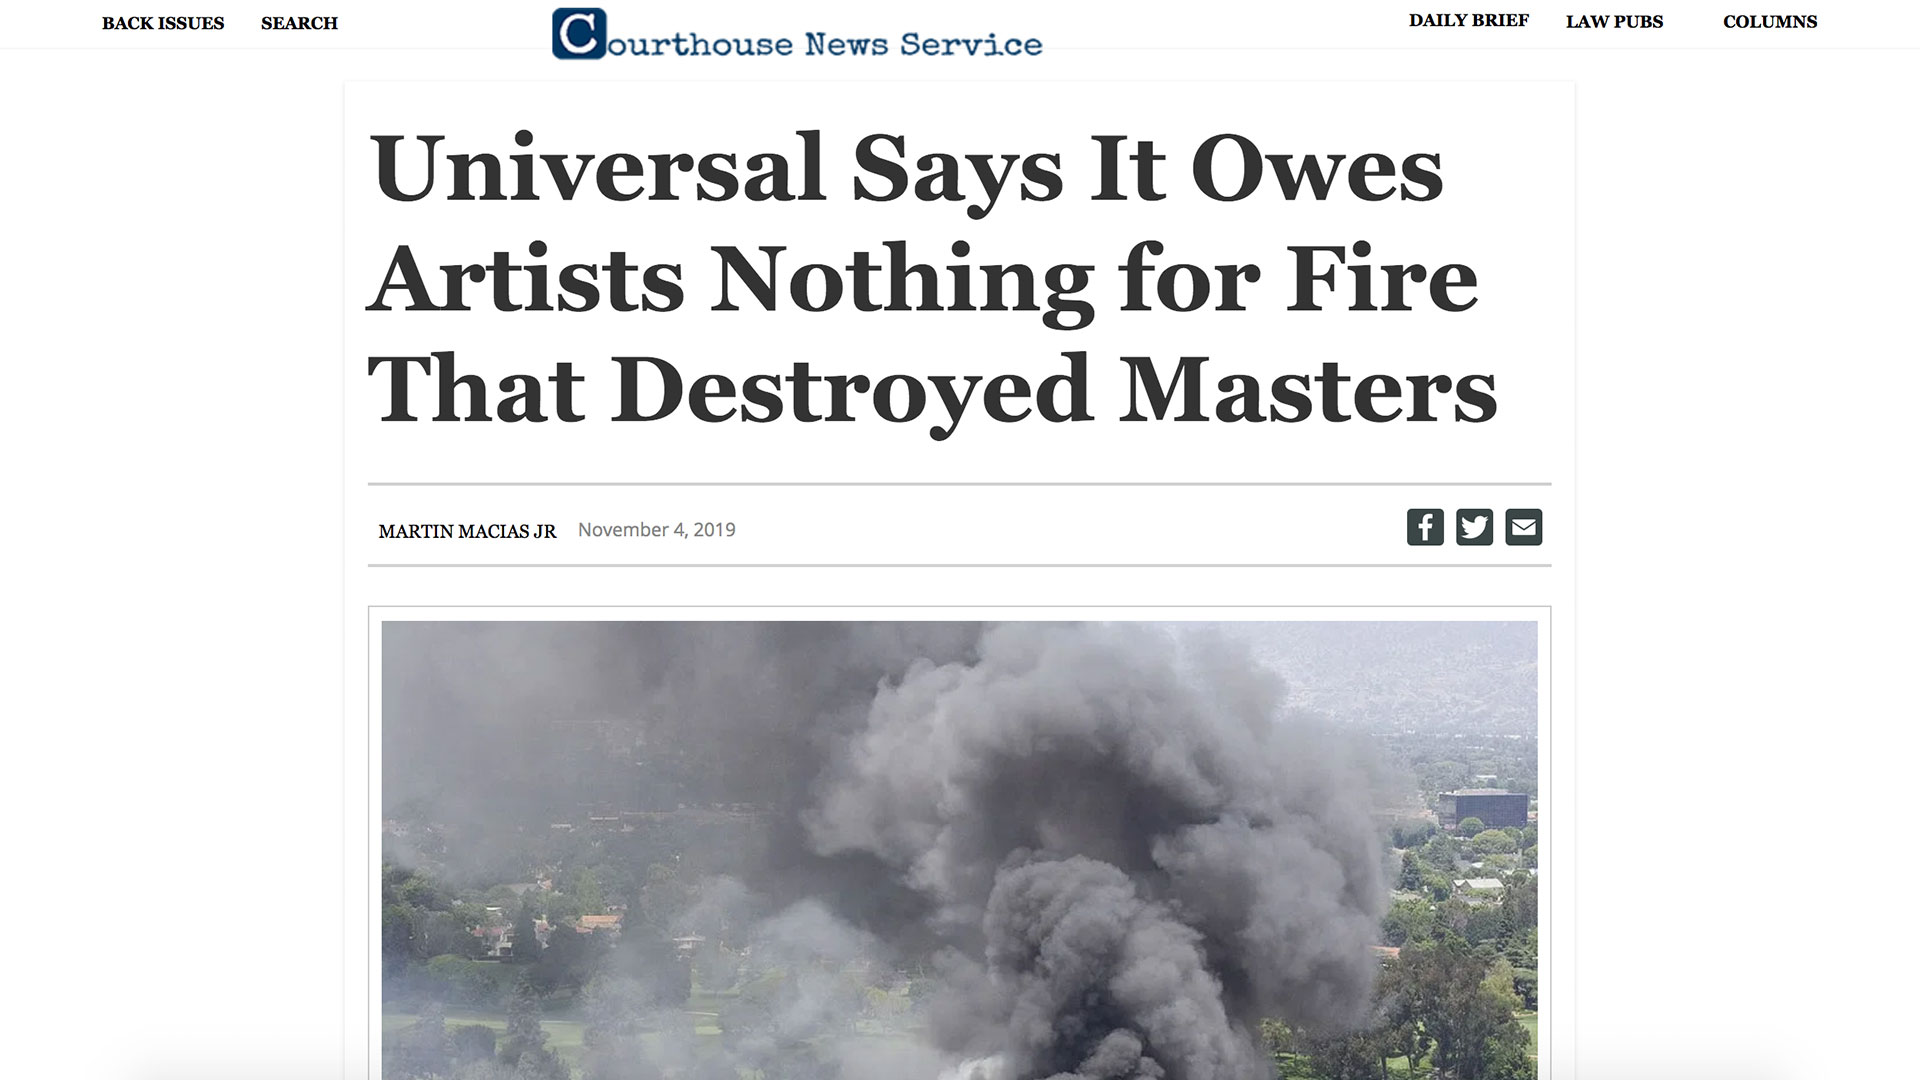 Fairness Rocks News Universal Says It Owes Artists Nothing for Fire That Destroyed Masters